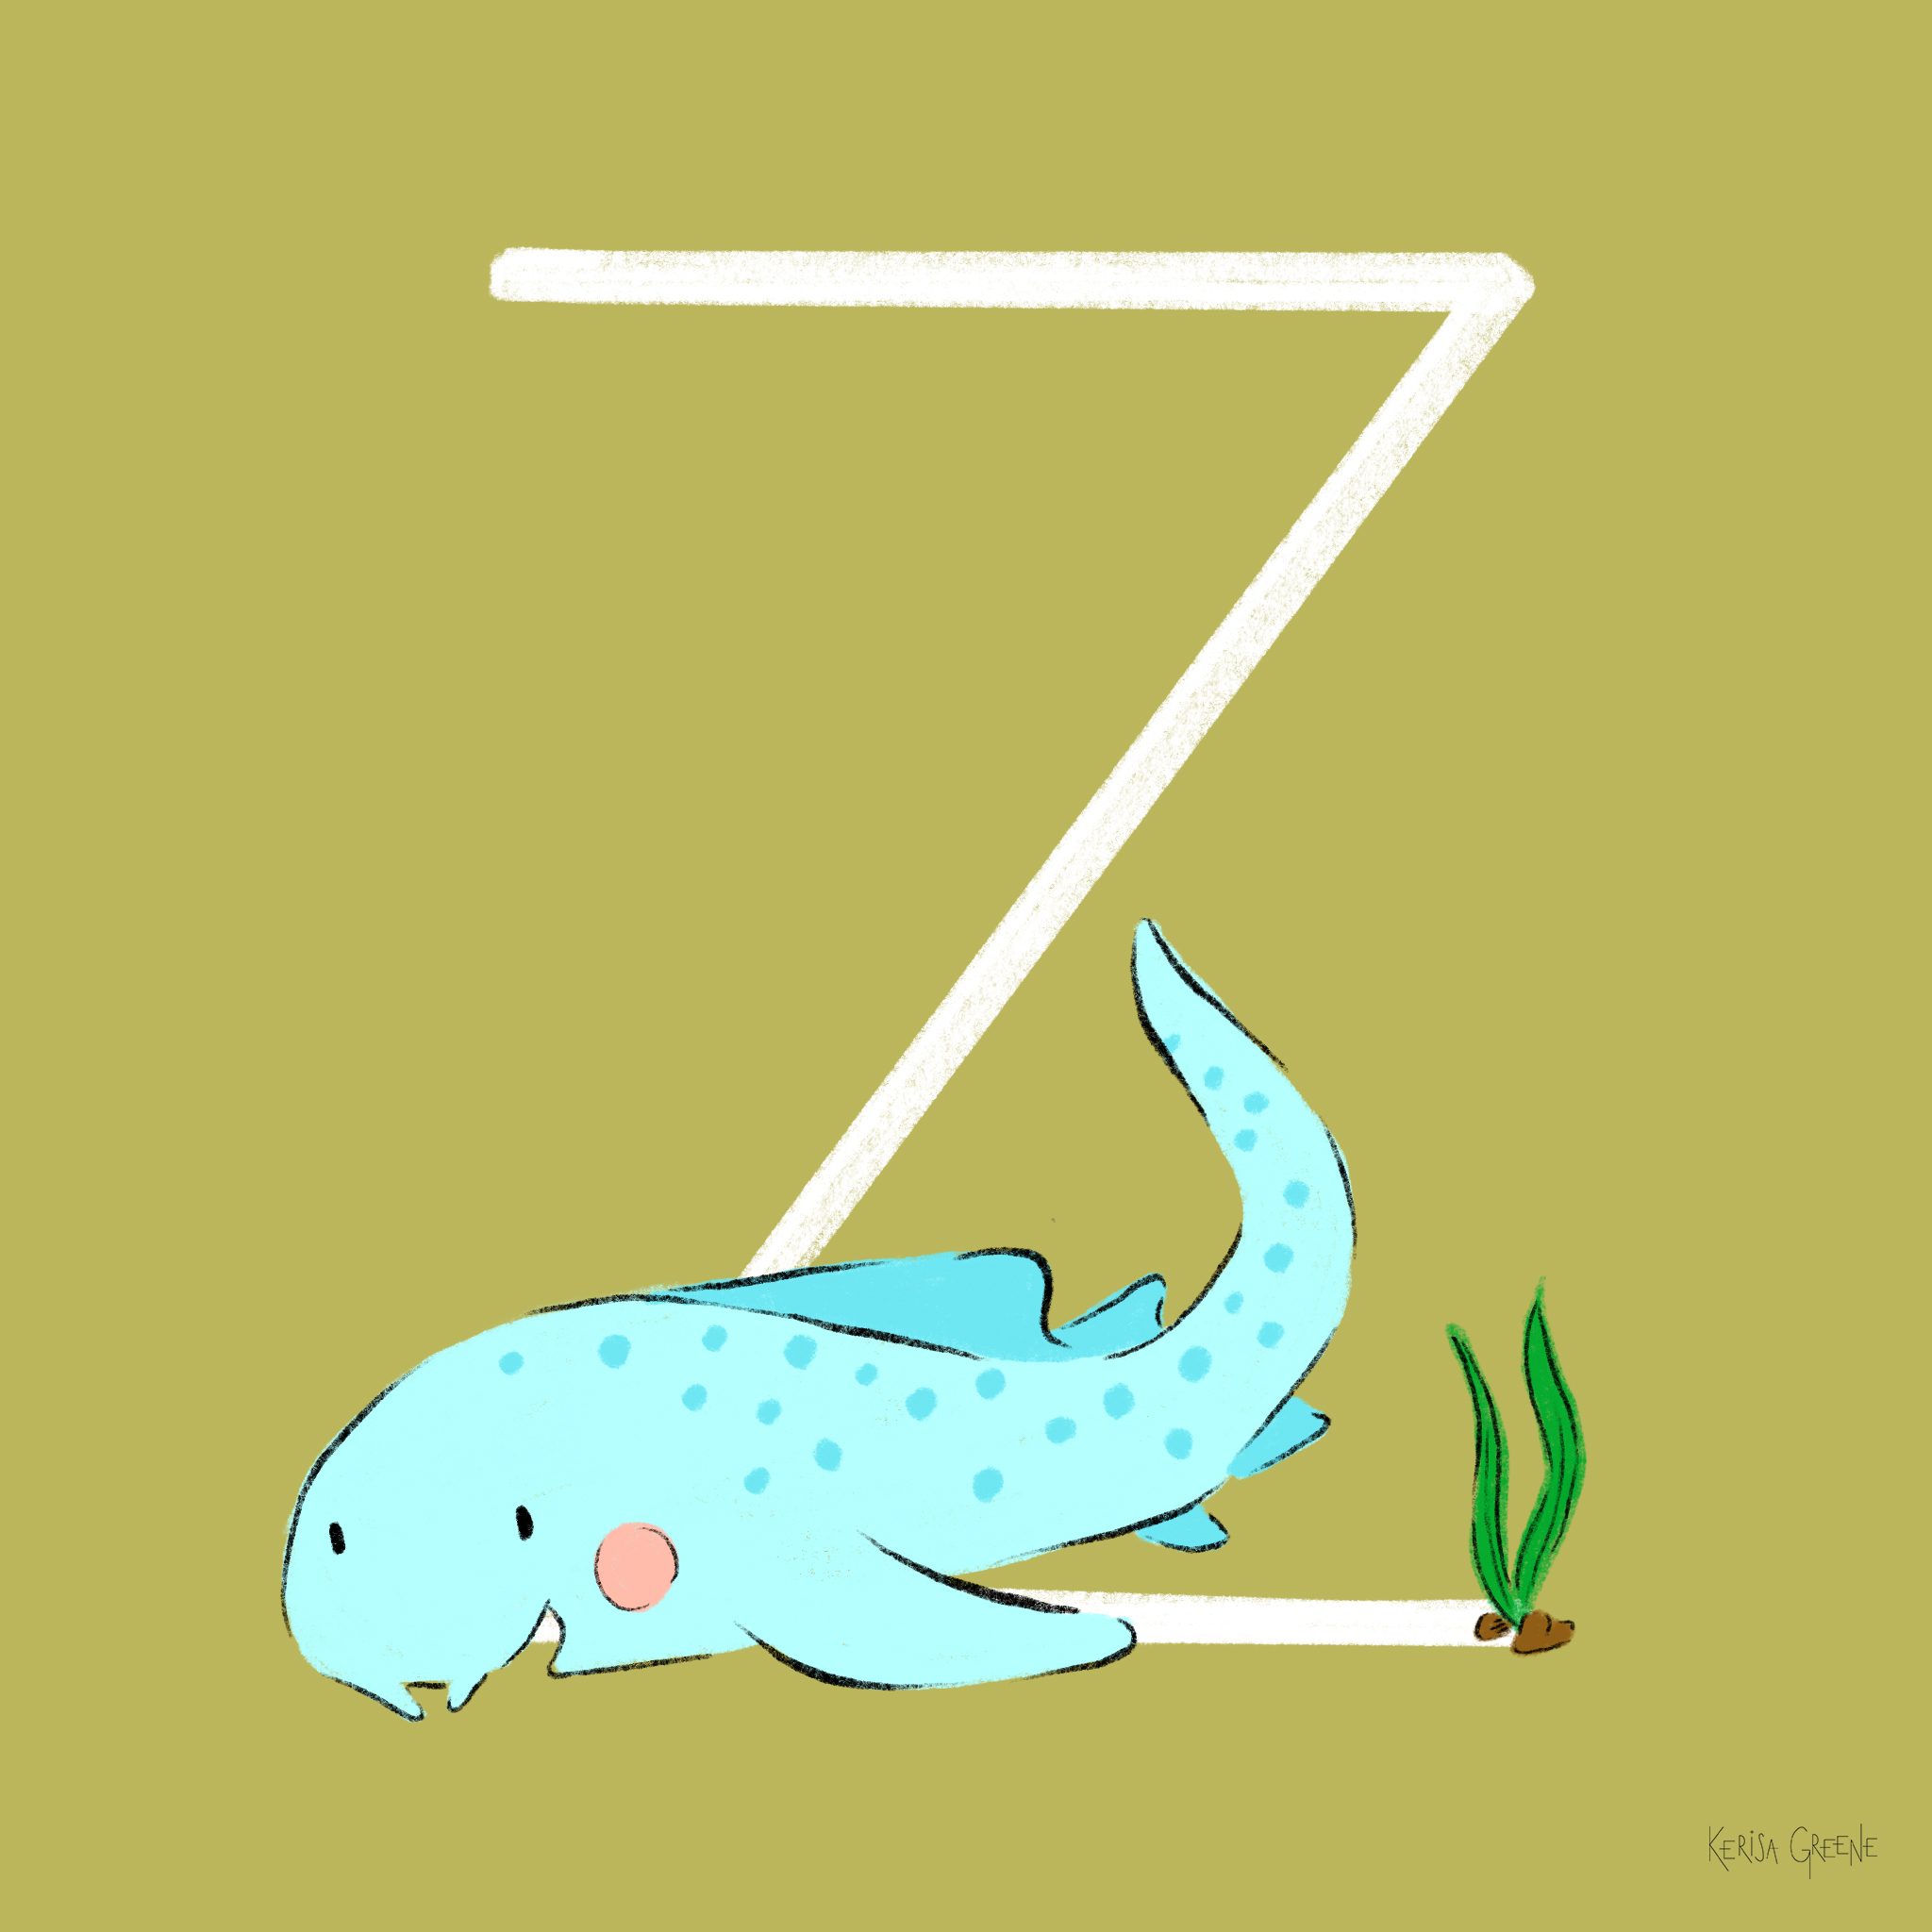 Z is for Zebra Shark   These nocturnal sharks can be found sleeping on the ocean floor and are considered endangered.